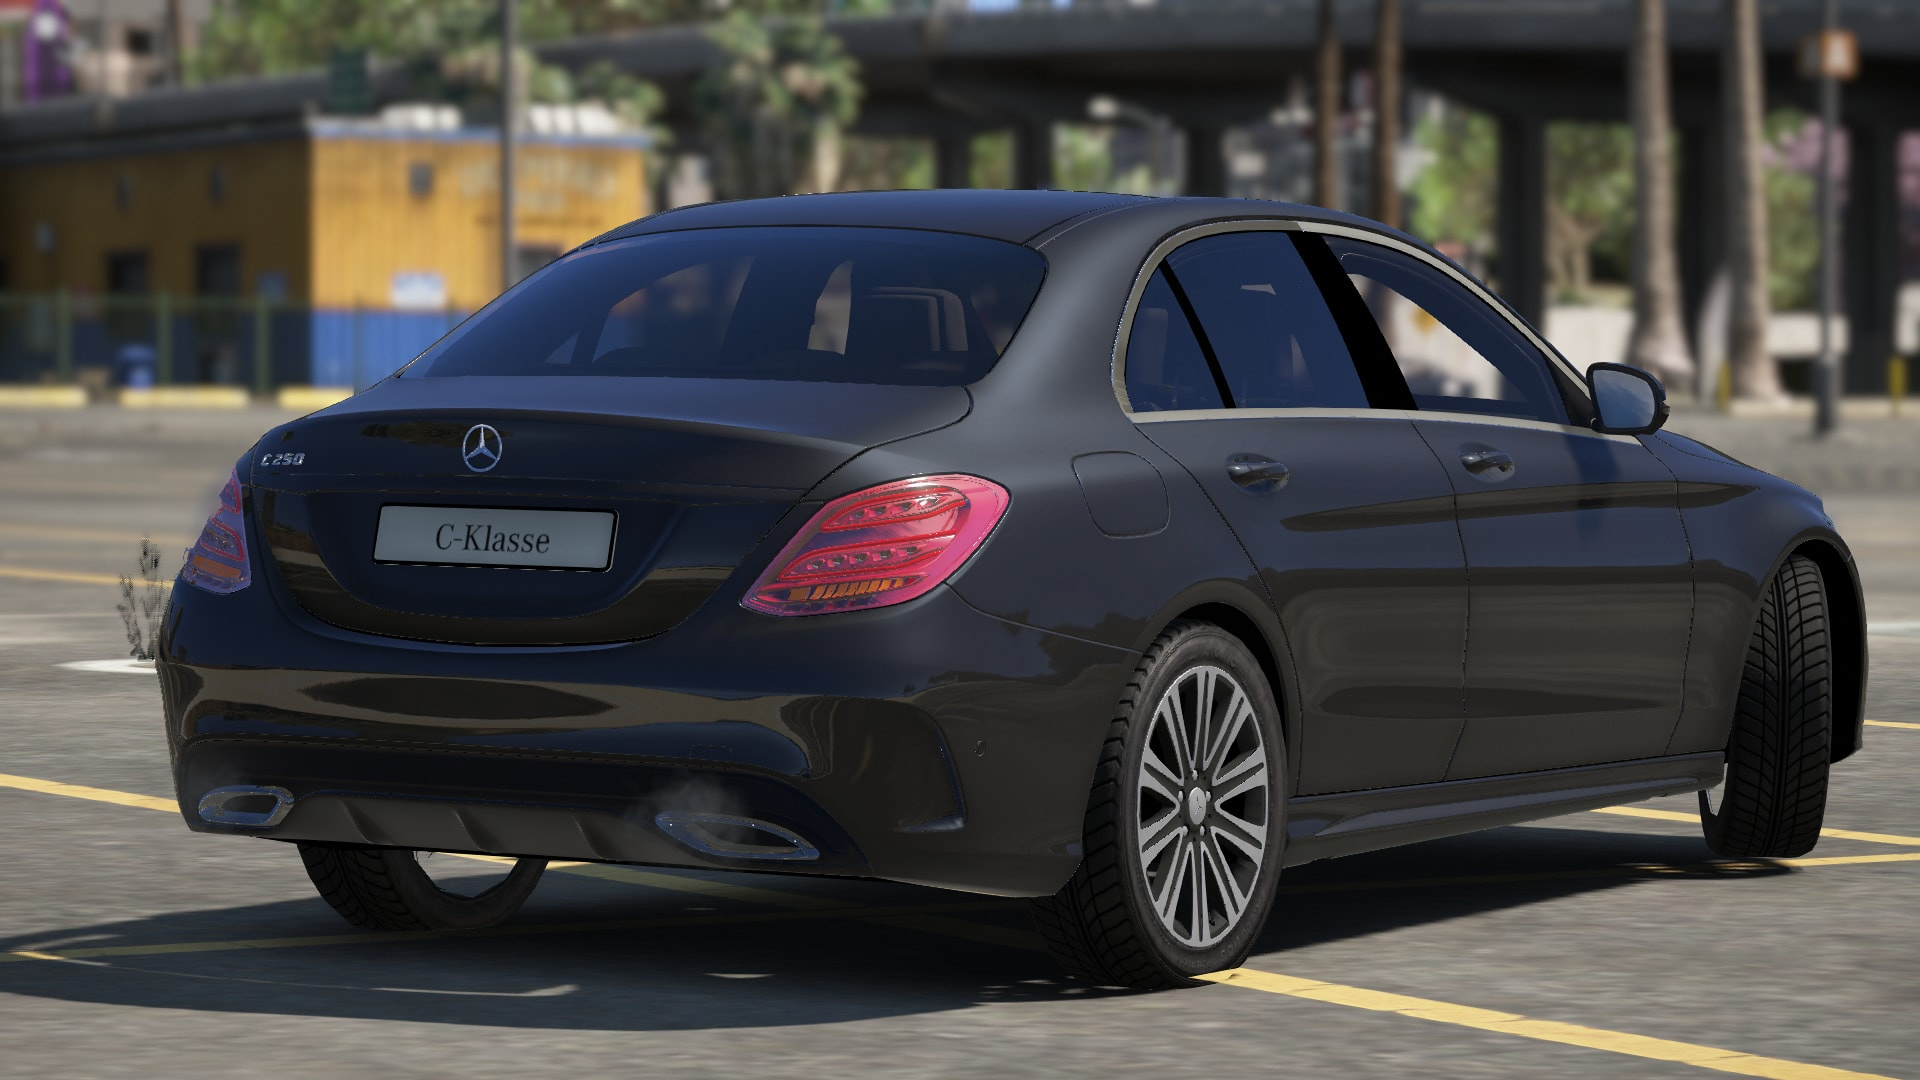 Mercedes benz c class w205 2014 unlocked gta5 for Mercedes benz gta